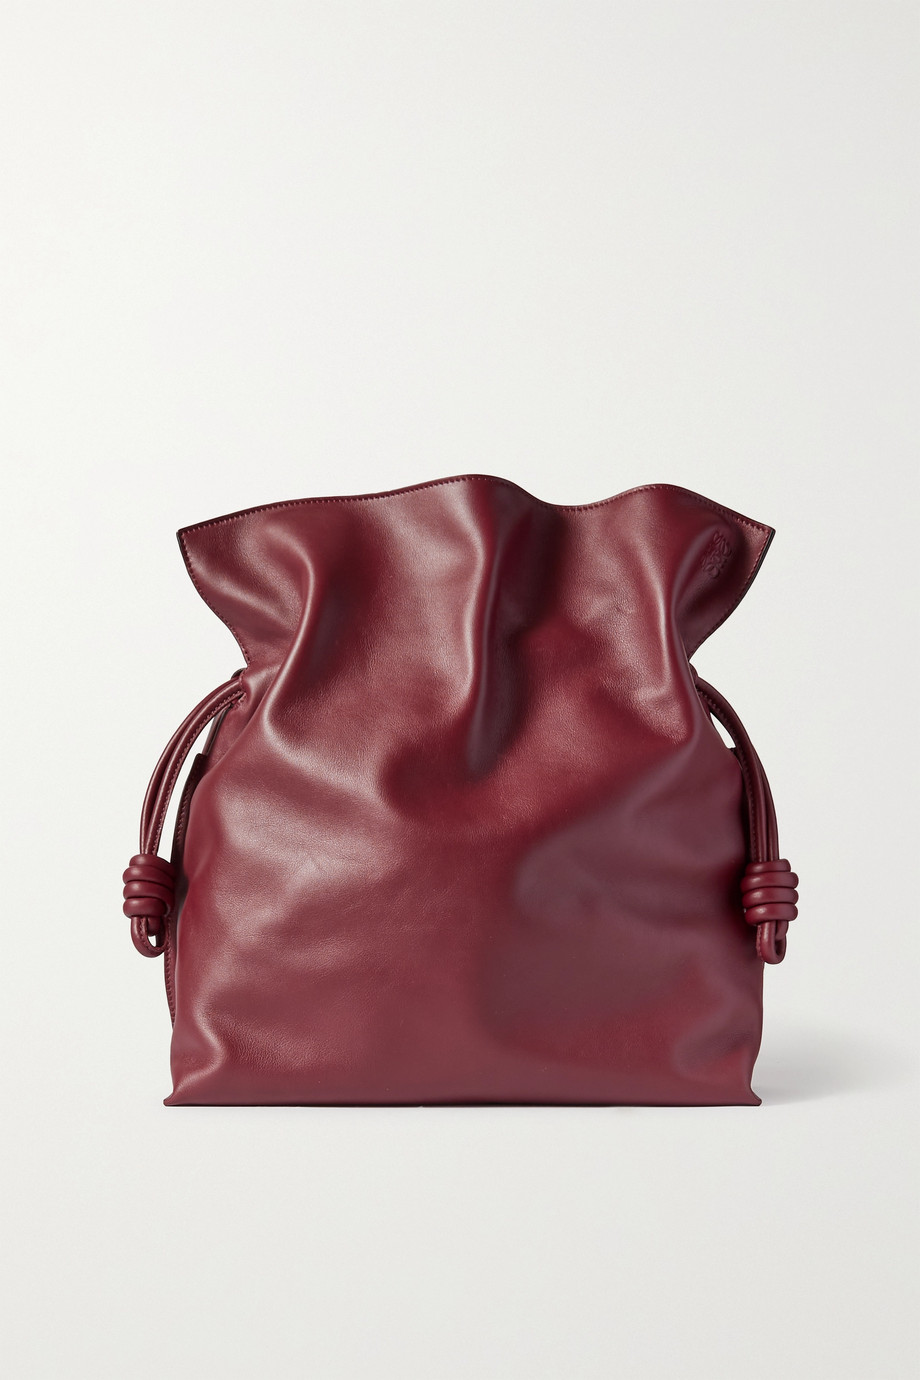 Loewe Flamenco large leather tote